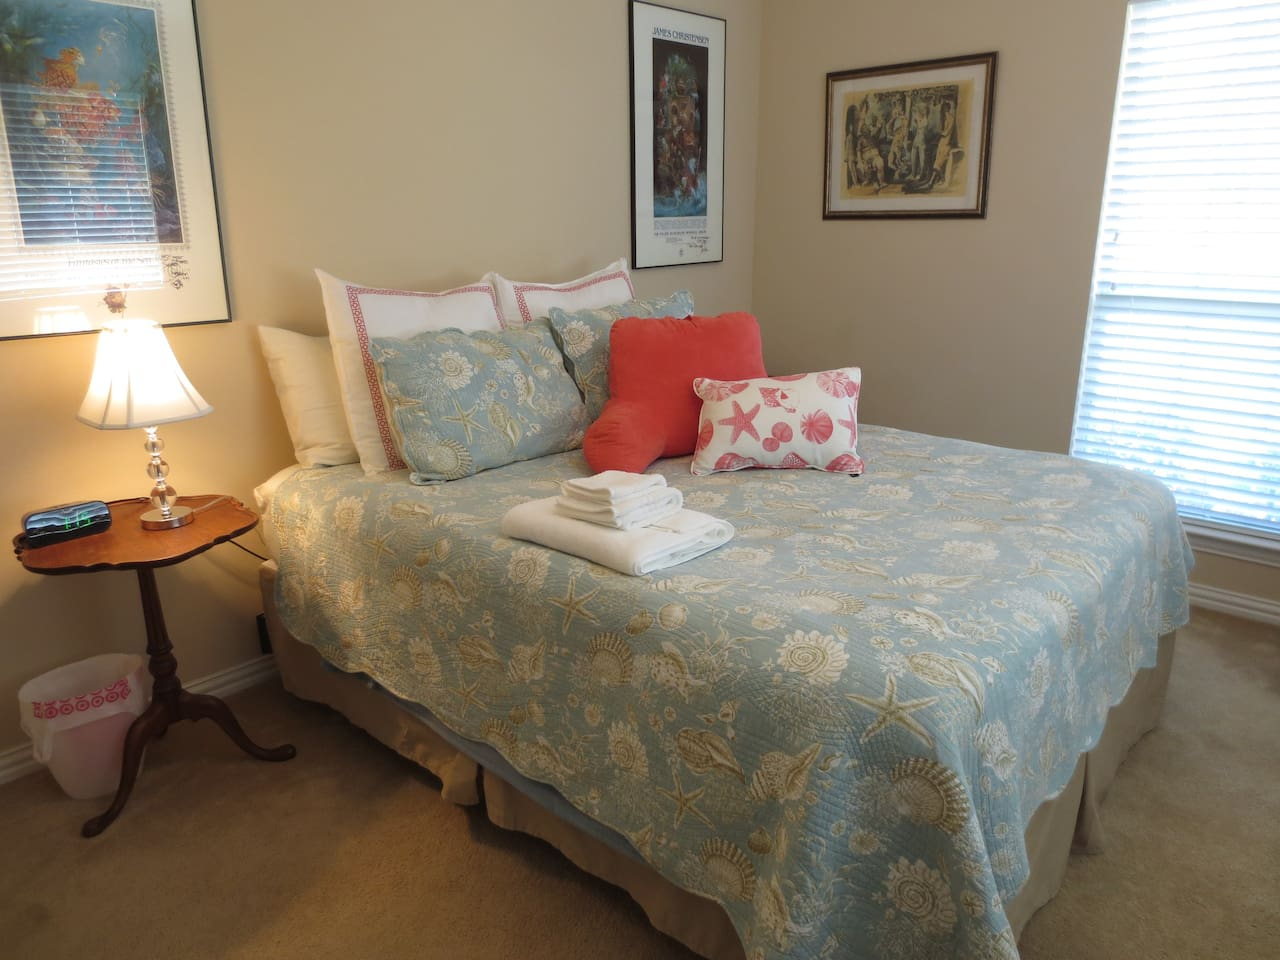 The bed with a reading lamp and plenty of pillows so you can relax with your laptop.